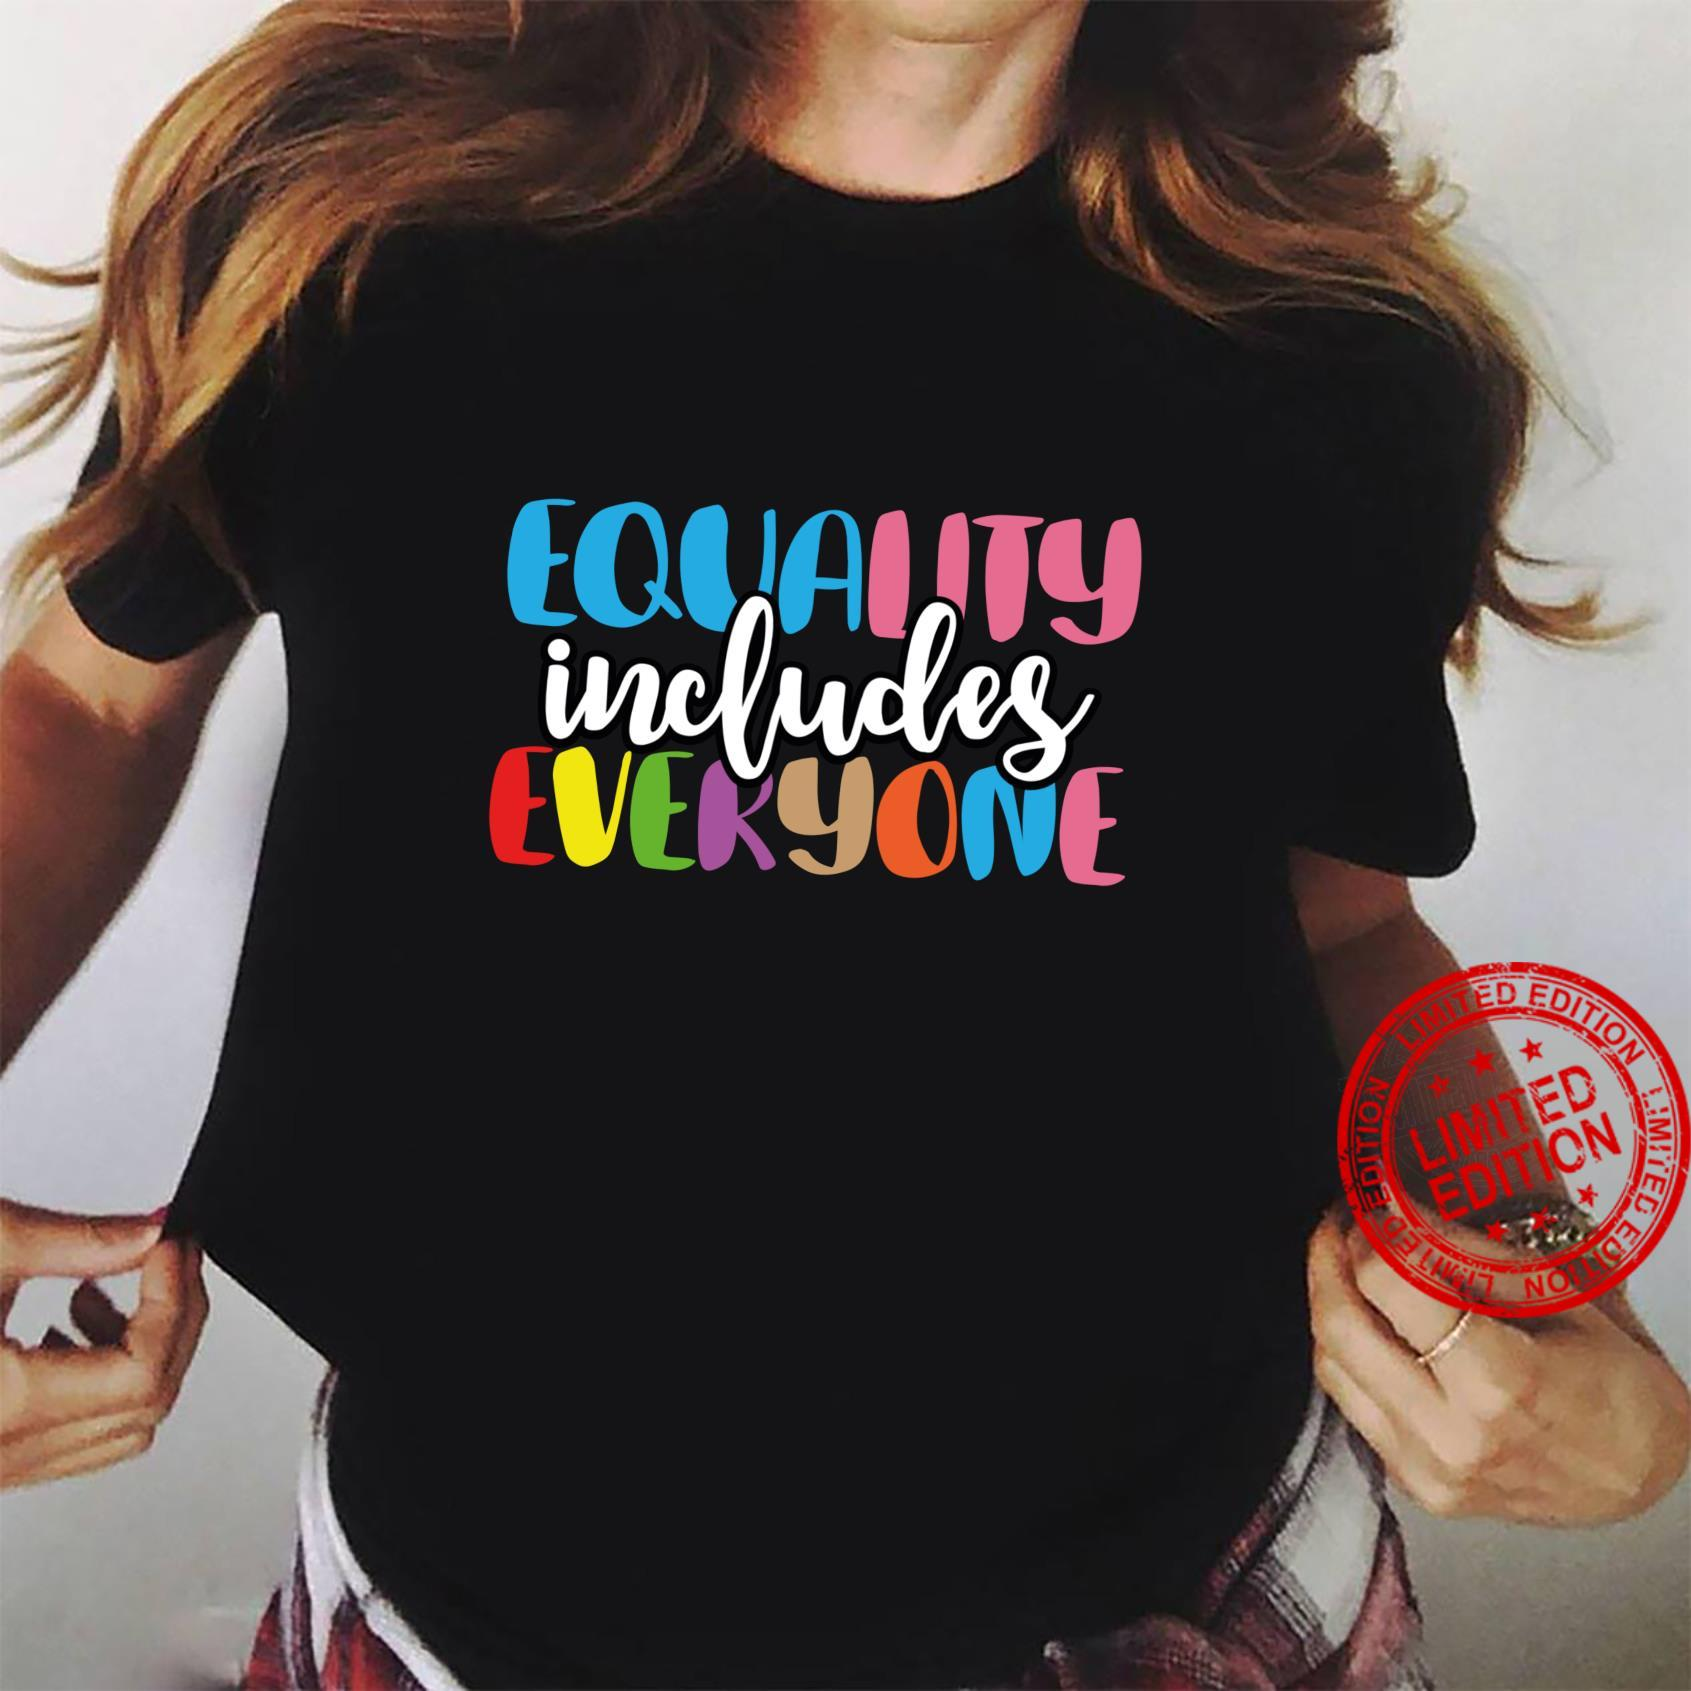 Equality Includes Everyone Social Justice Shirt ladies tee